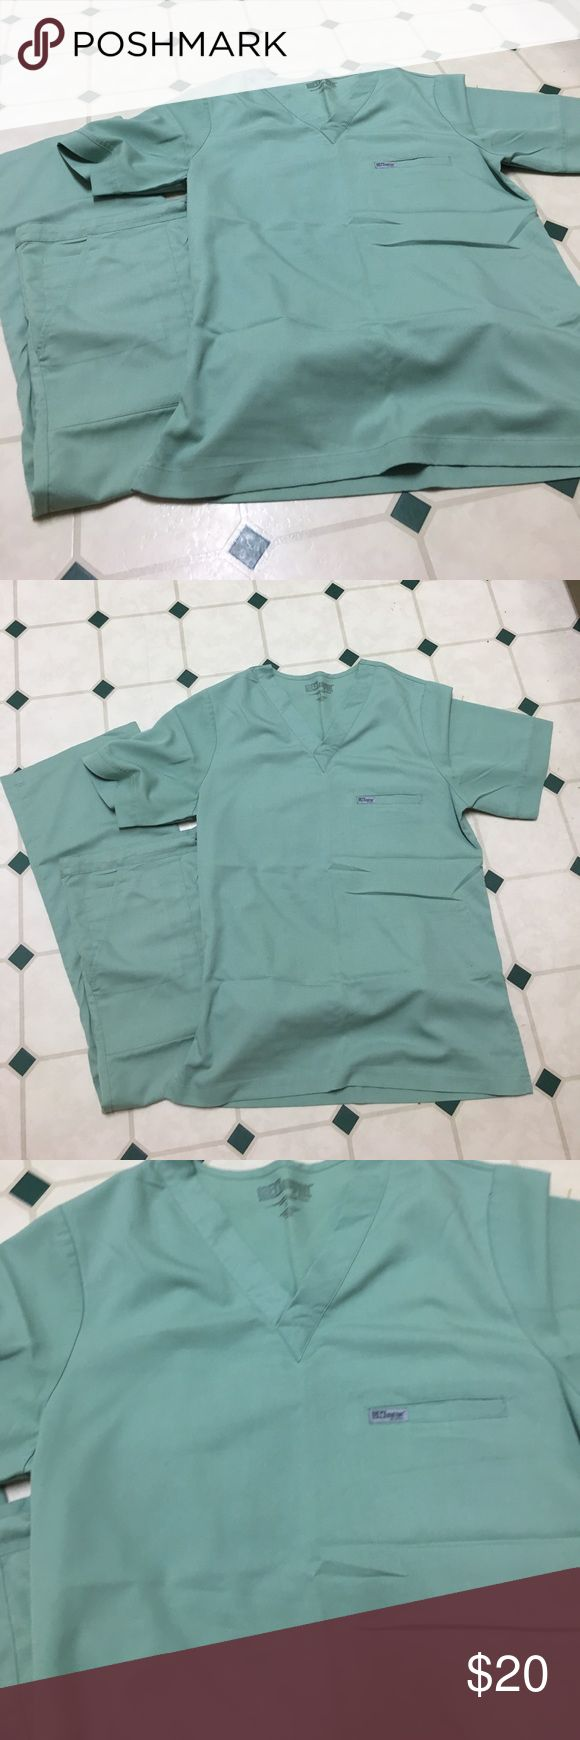 """Grey's Anatomy by Barco unisex scrub set. Unisex Grey's Anatomy scrub set (reminds me of the OR scrubs). Soft """"flowy"""" material. Size small unisex. Barely worn. I love these scrubs the material is soft and flexible. Happy to answer any questions...thanks❣️ Grey's Anatomy by Barco Other"""